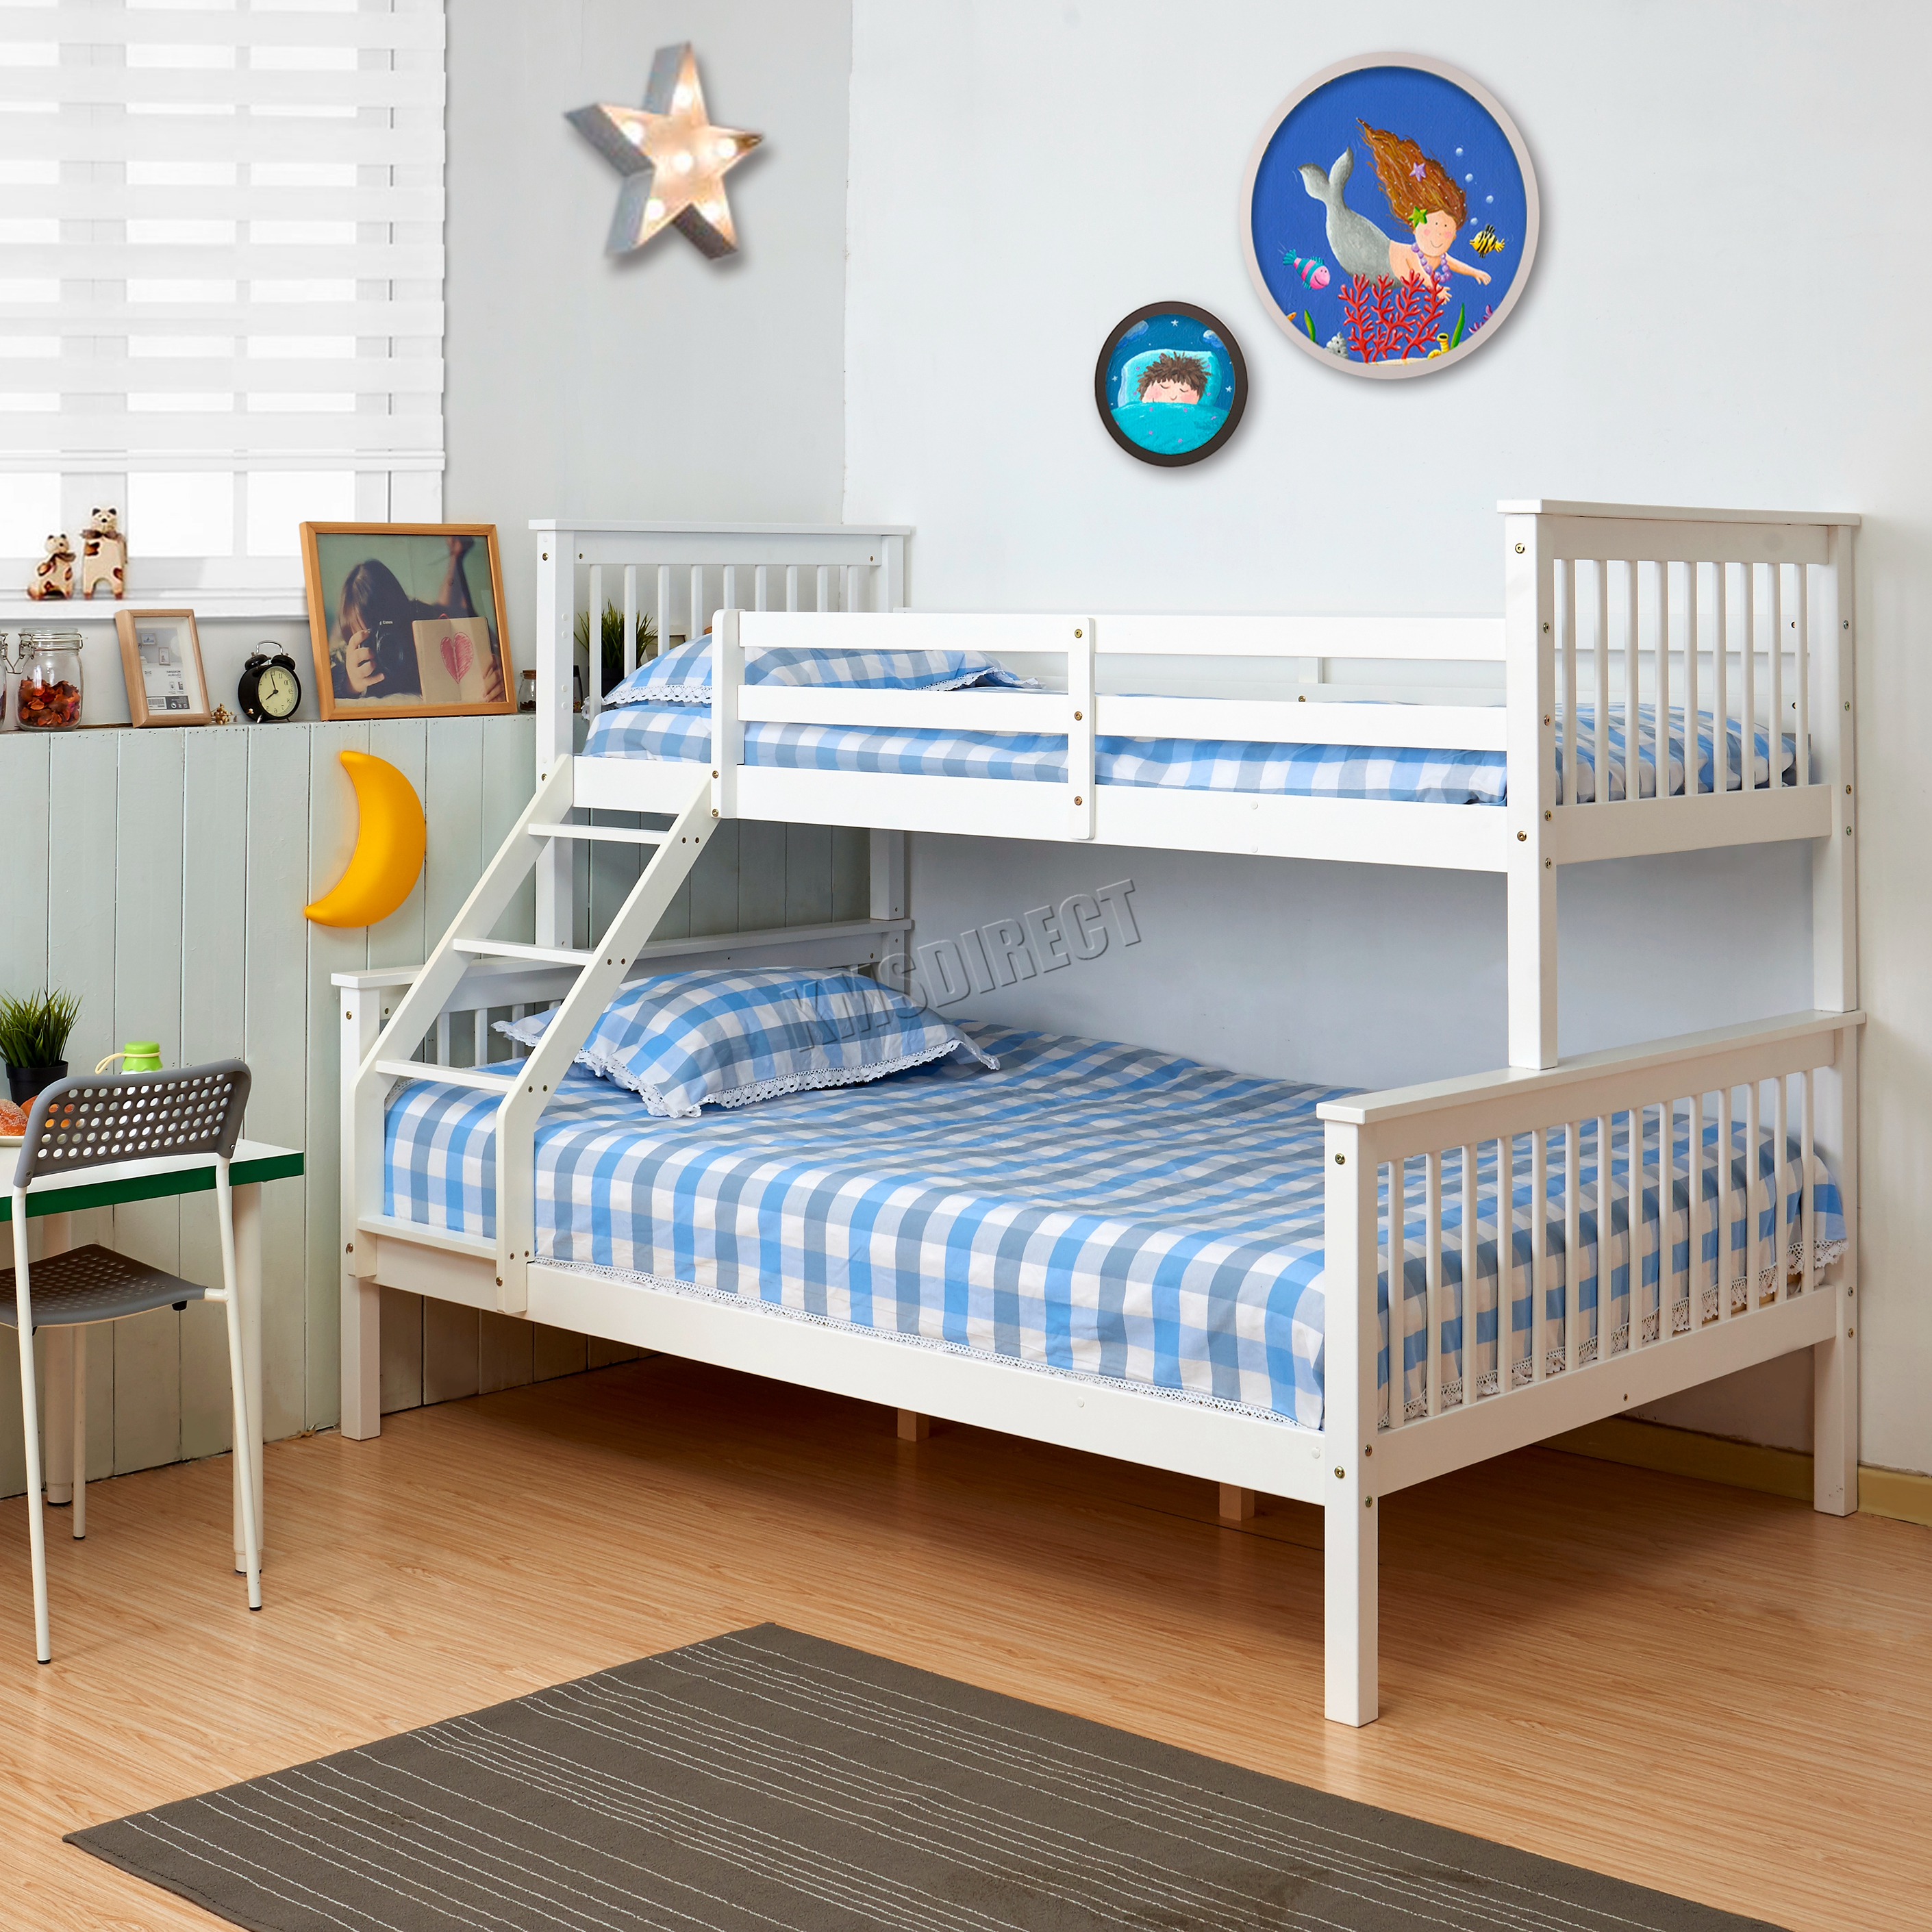 Foxhunter bunk bed wooden frame children kids triple for Wood frame bunk beds